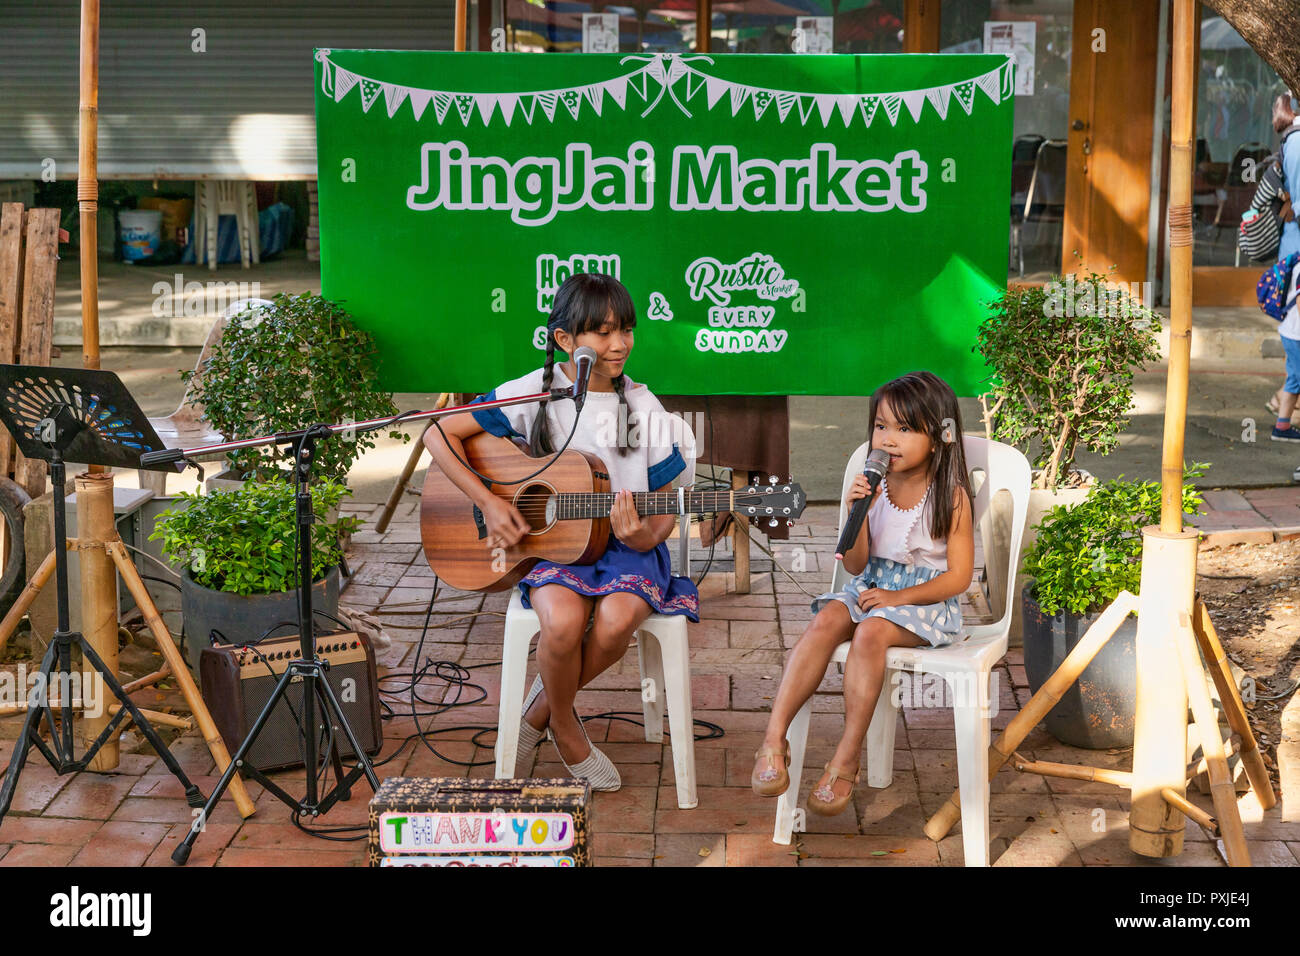 Talented young girls sing and play guitar at JingJai Farmer's Market, Chiang Mai, Thailand - Stock Image